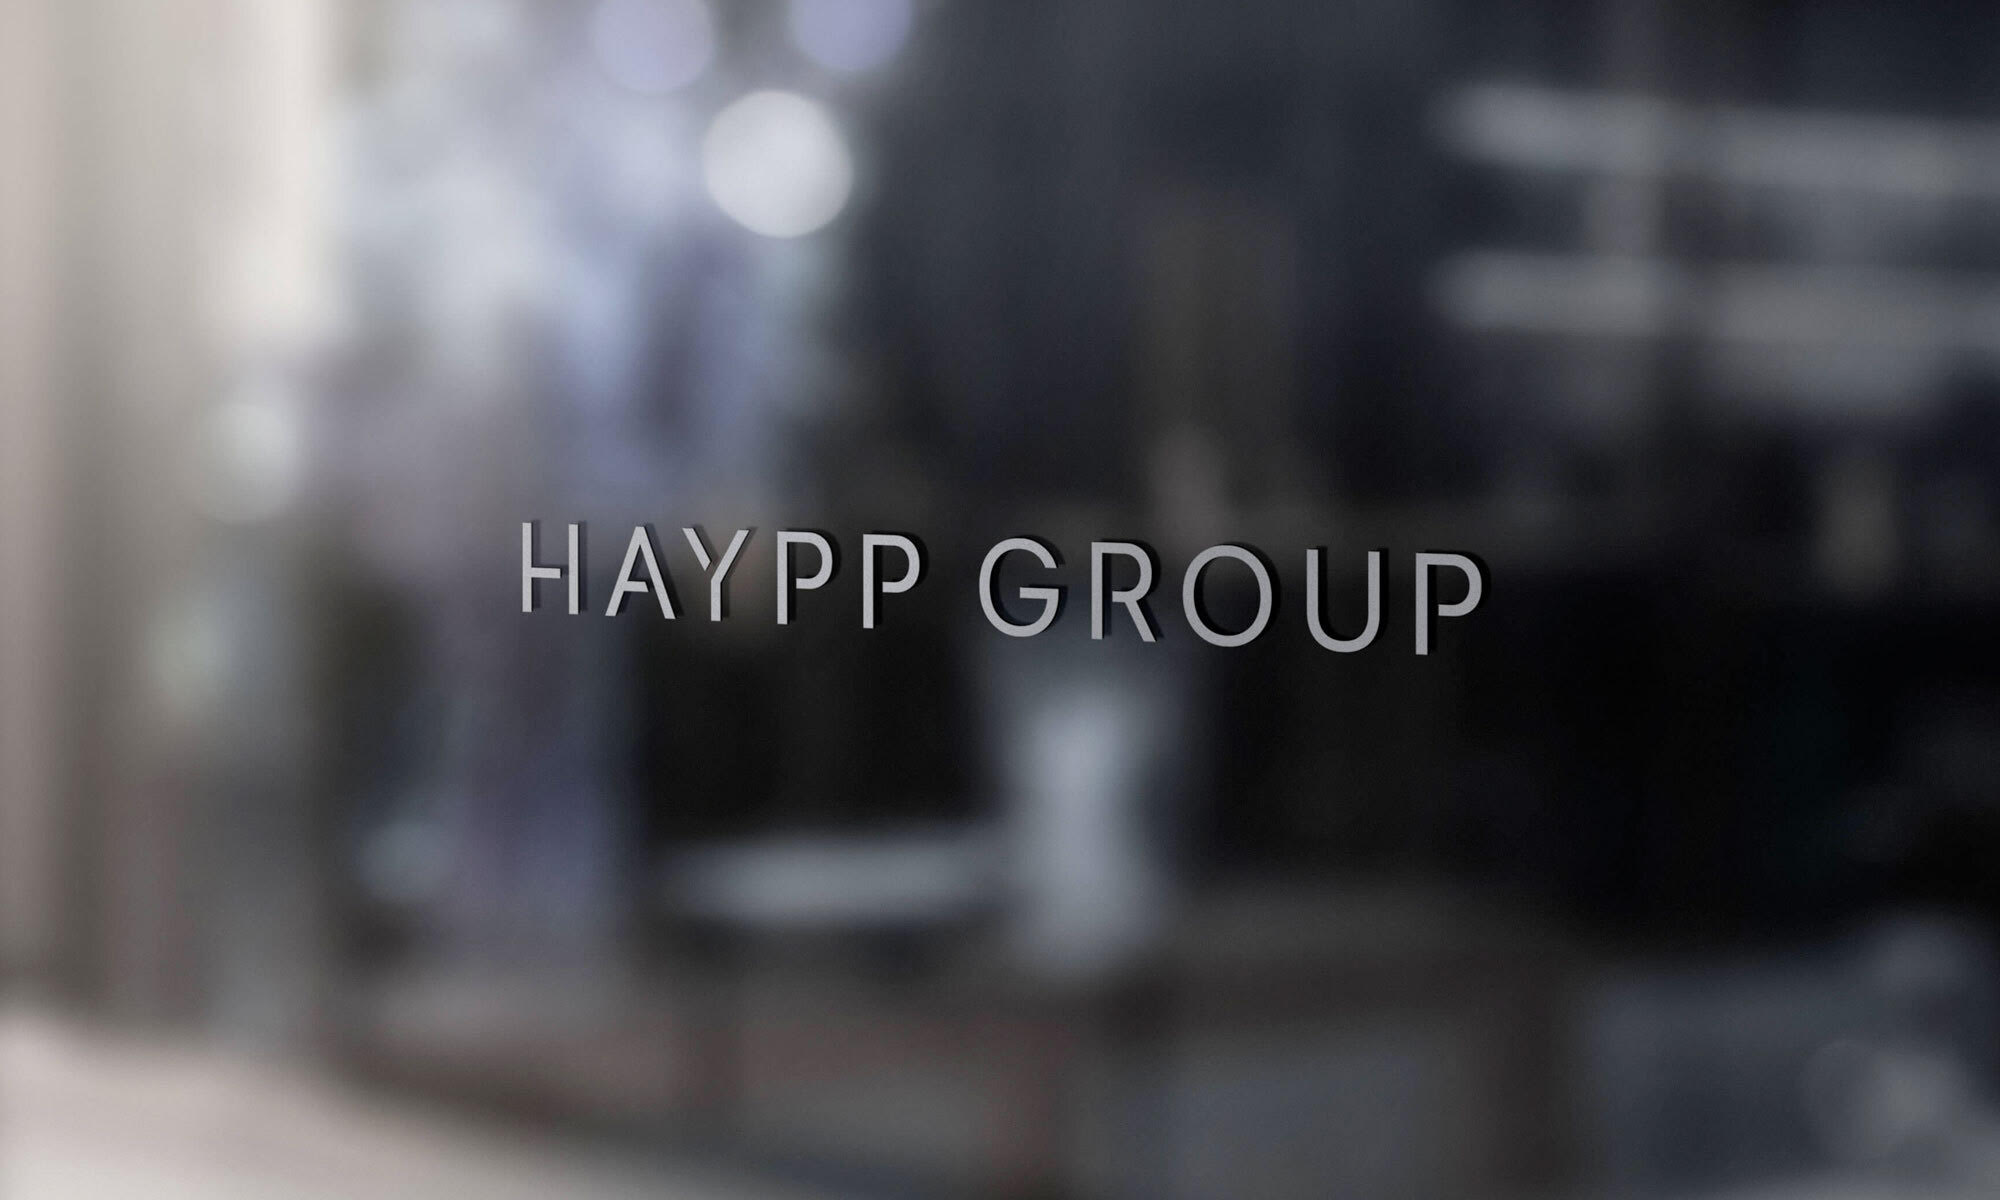 Haypp Group acquires a Swedish tier 1 online business